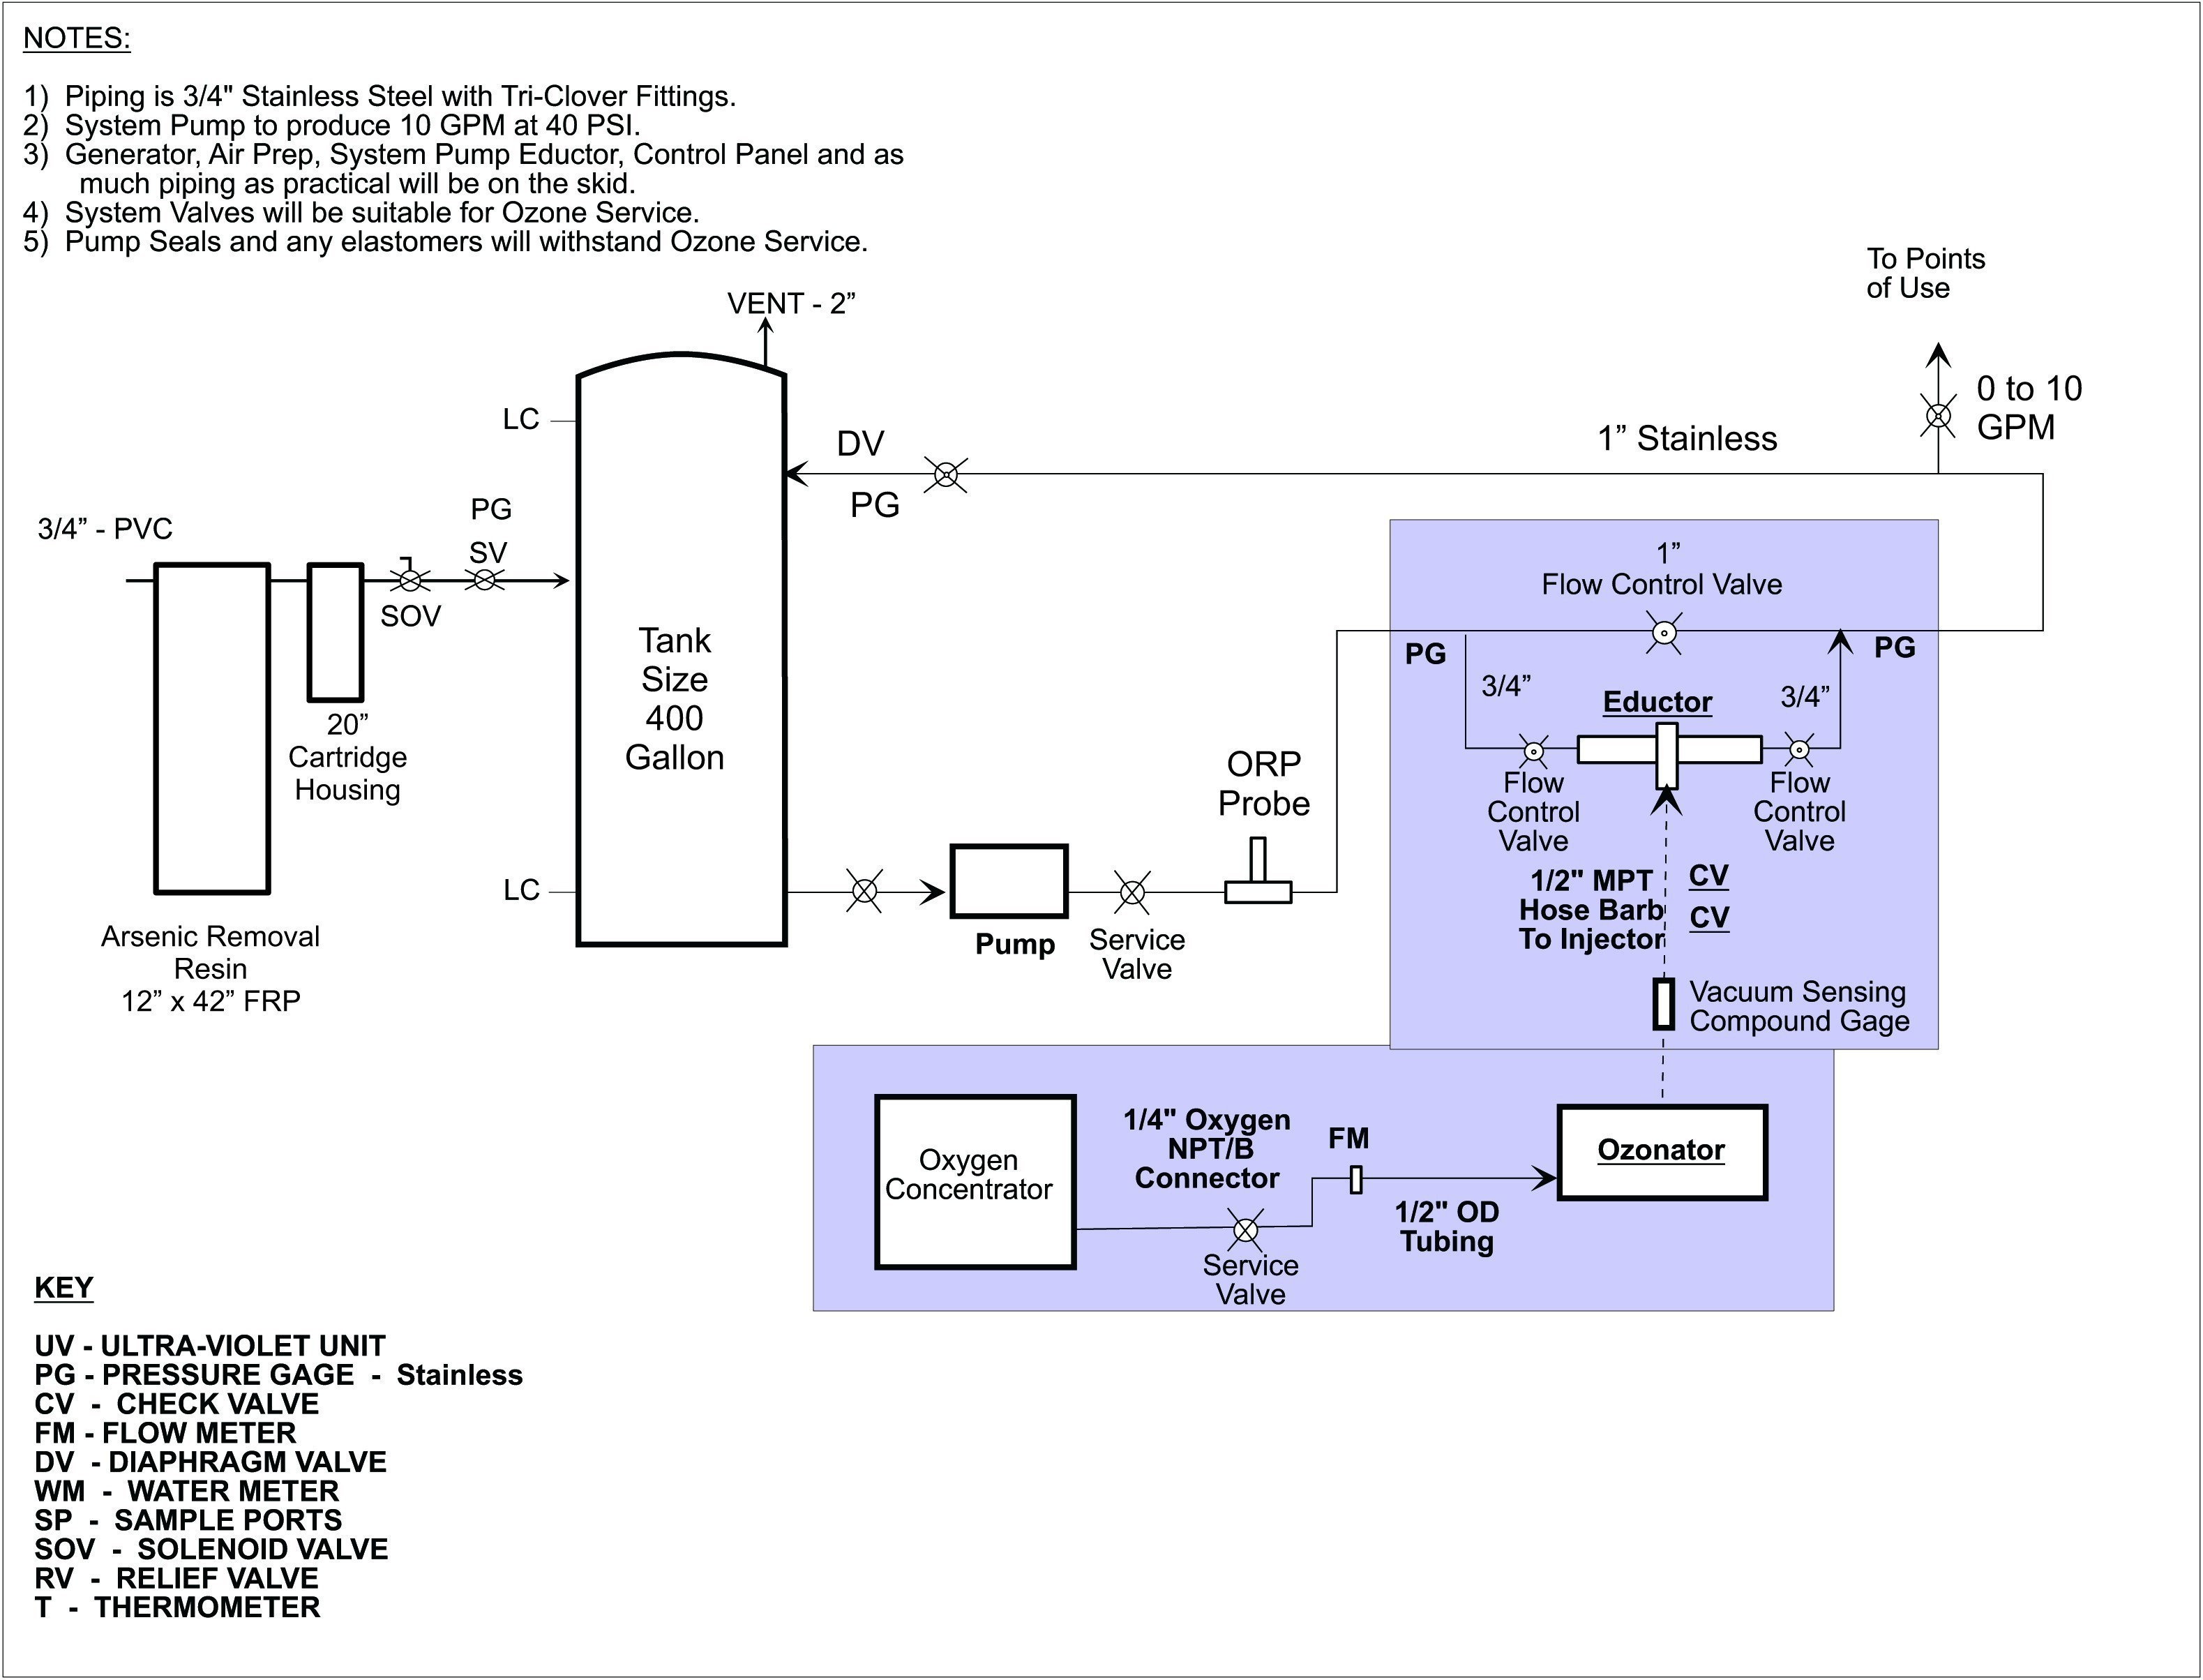 18 Kw Wiring Diagram - All Wiring Diagram - Briggs And Straton Wiring Diagram